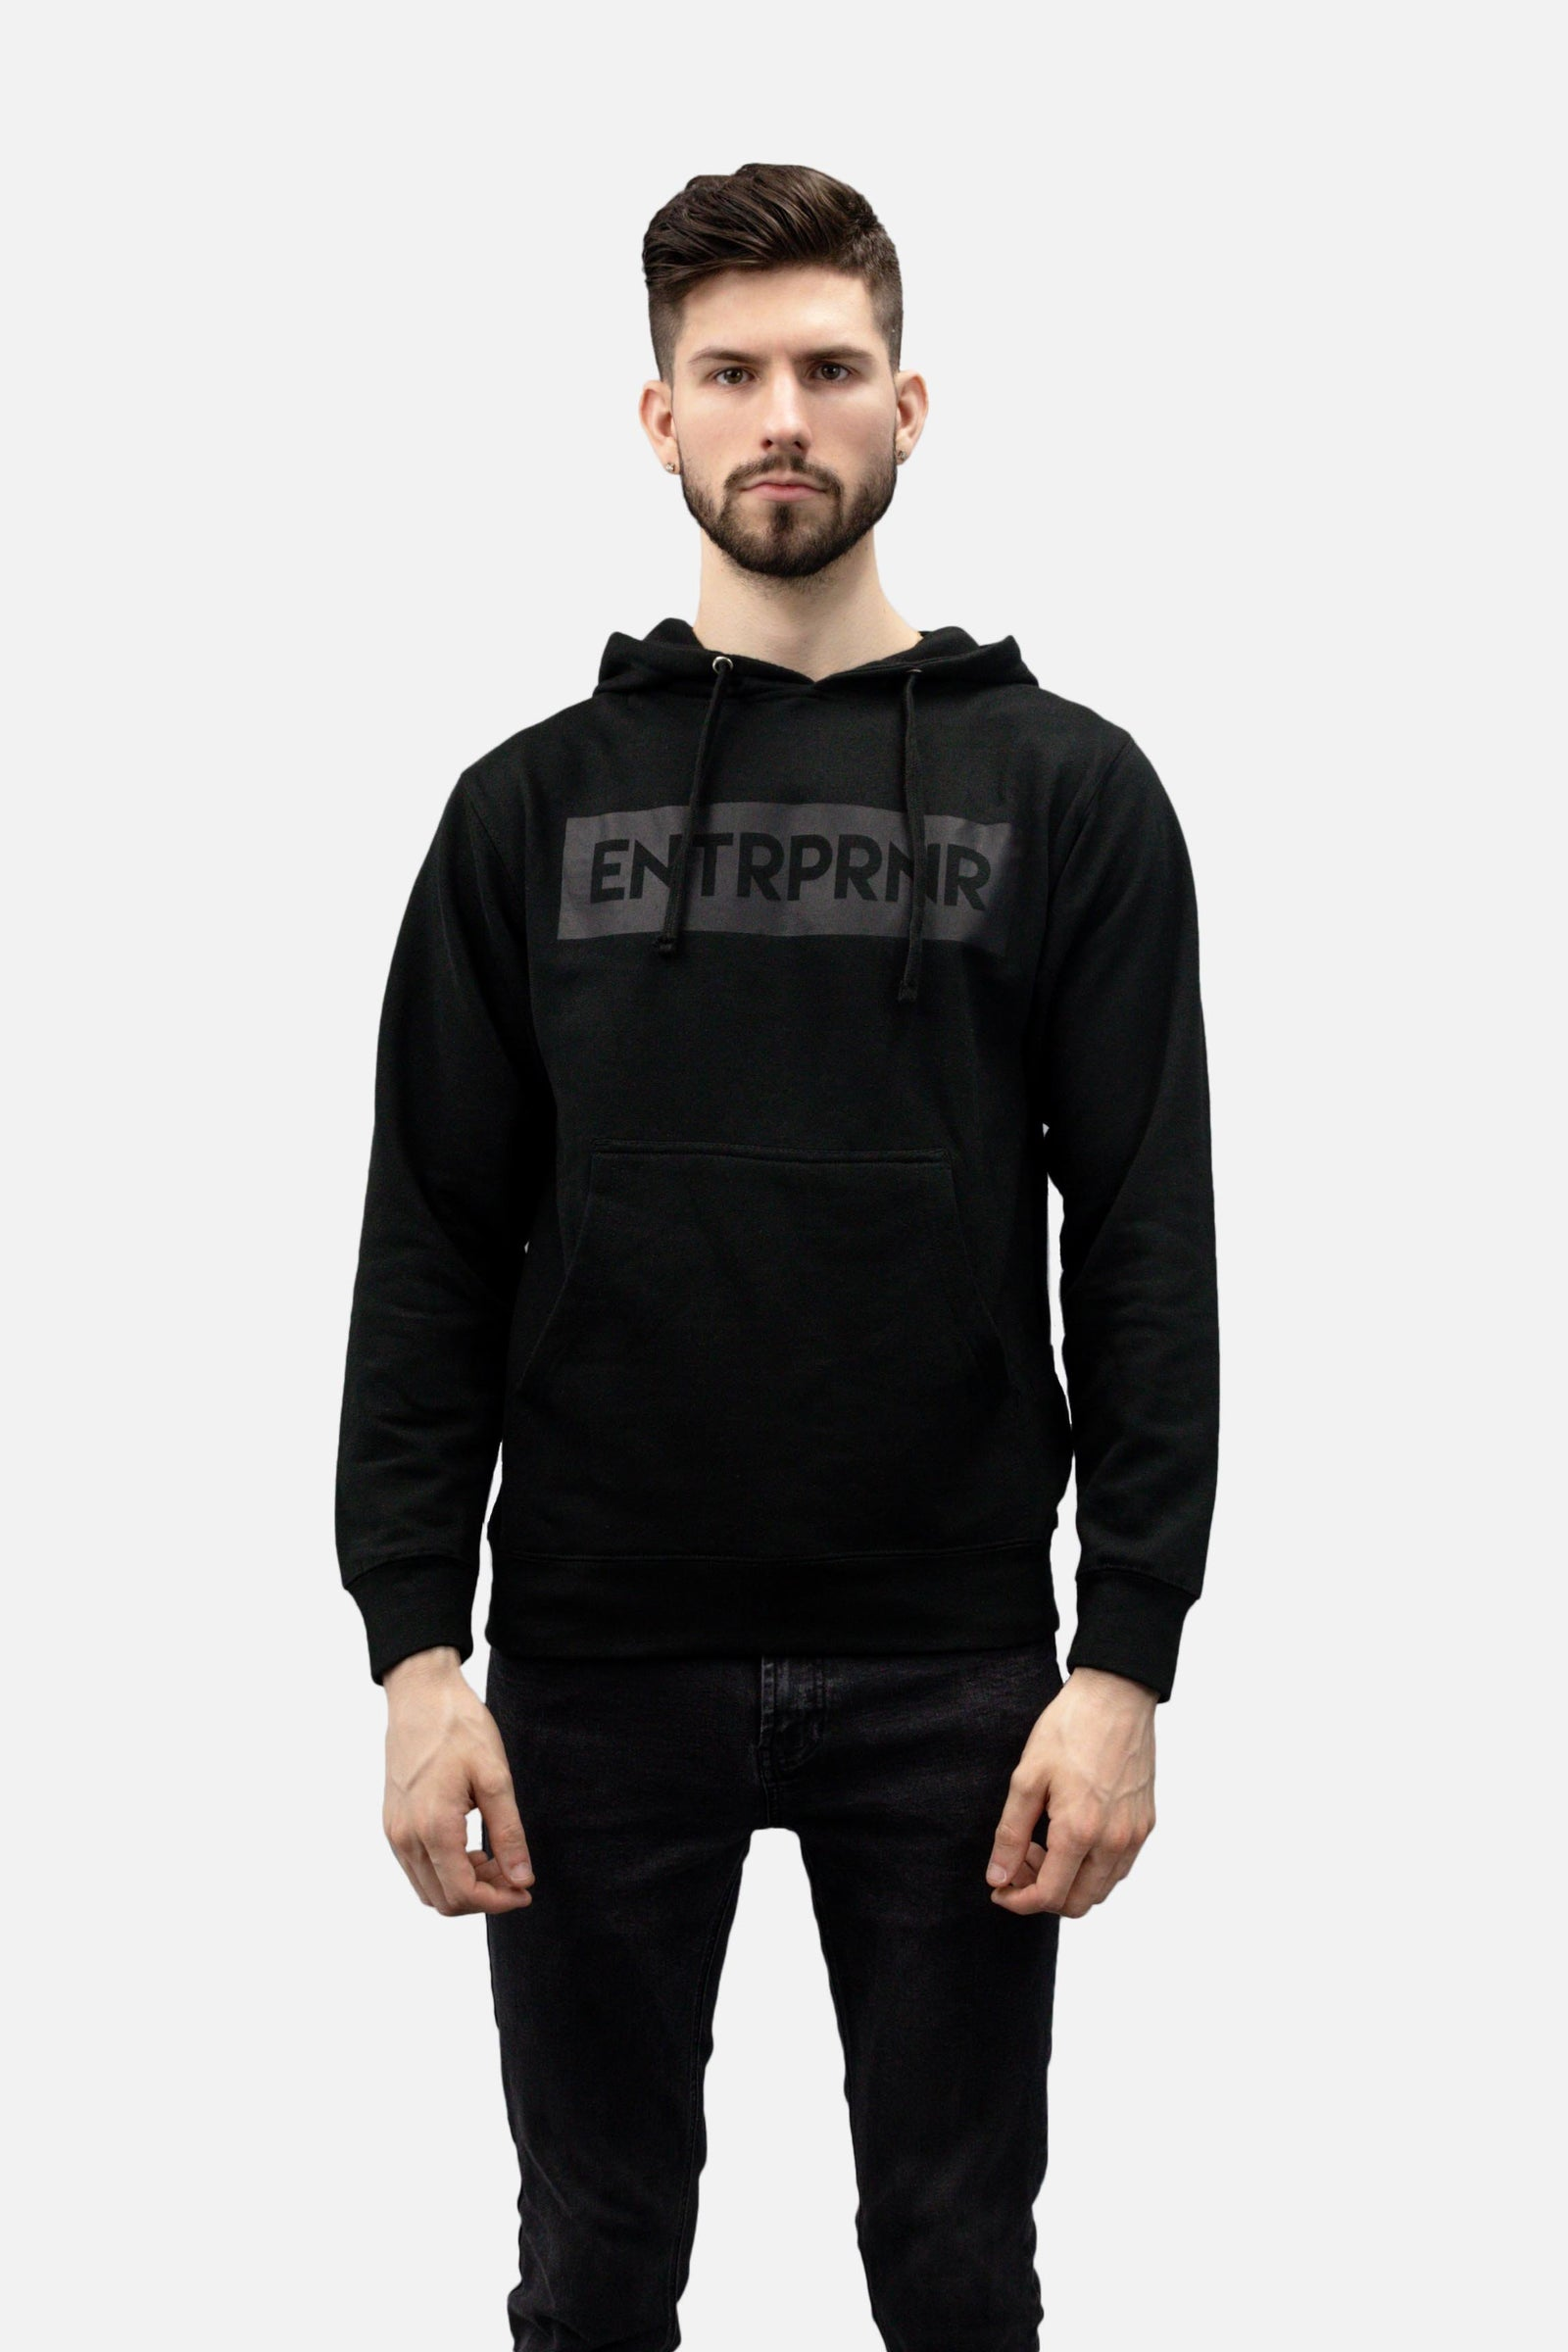 Classic ENTRPRNR Hoodie - Black - ENTRPRNR® | The Entrepreneur's Clothing Brand. | Stagnancy is the Enemy. Action is King.